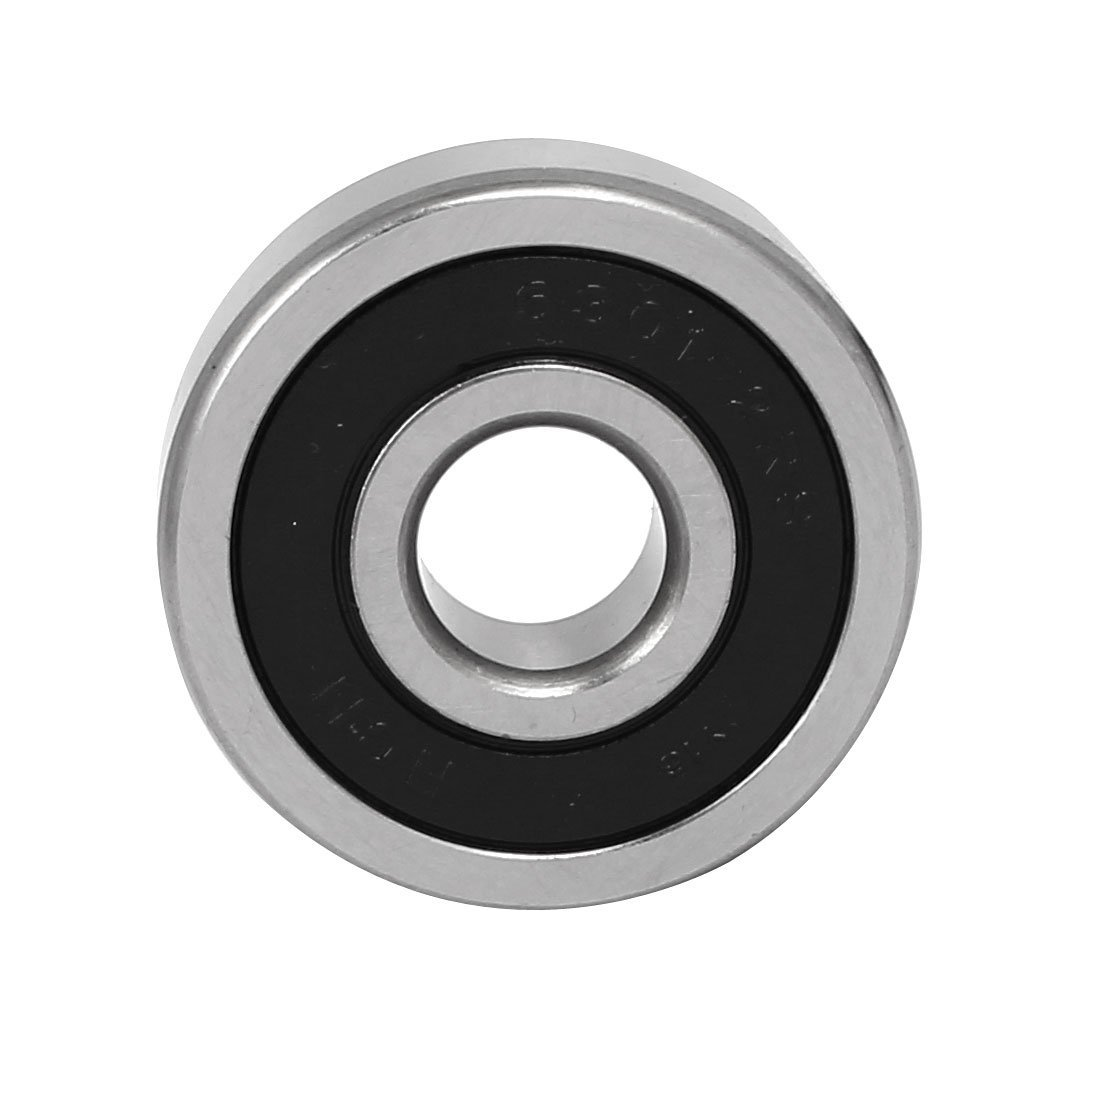 eDealMax 12mmx37mmx12mm Seal Design ranura profunda Rolling Ball Bearing 6301-2RS: Amazon.com: Industrial & Scientific